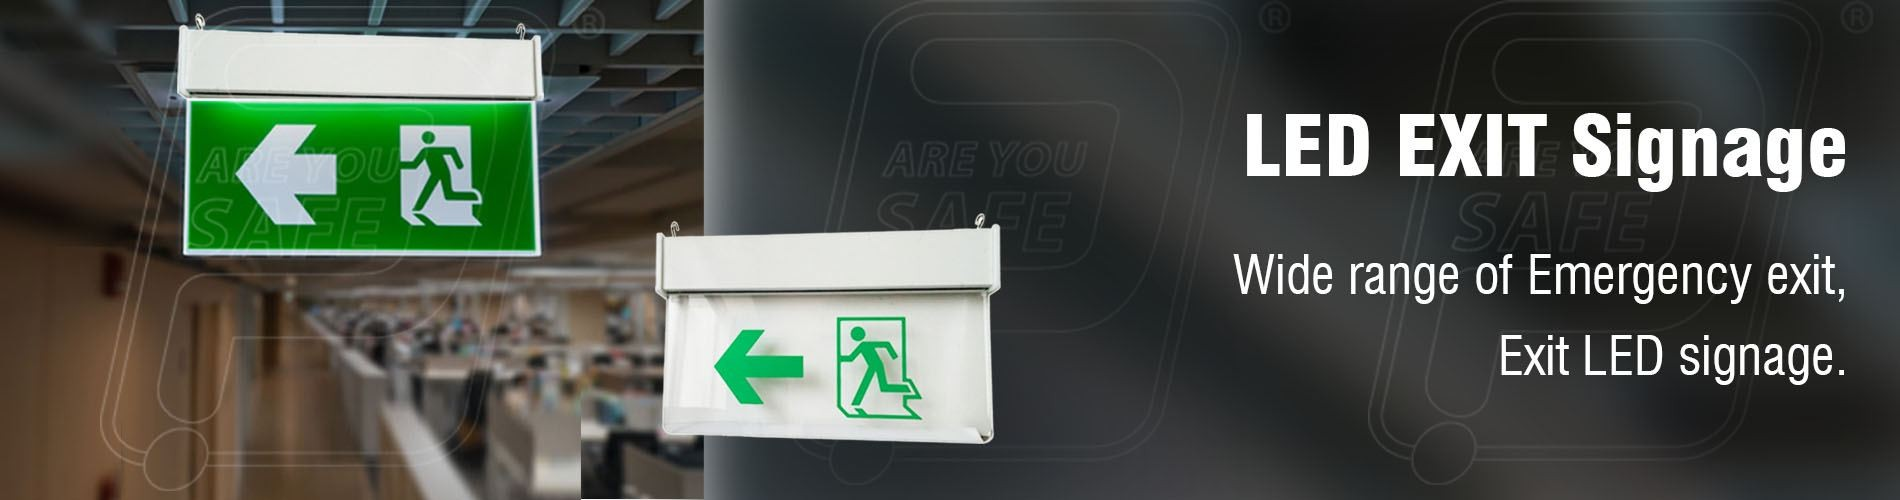 LED SAFETY SIGNS